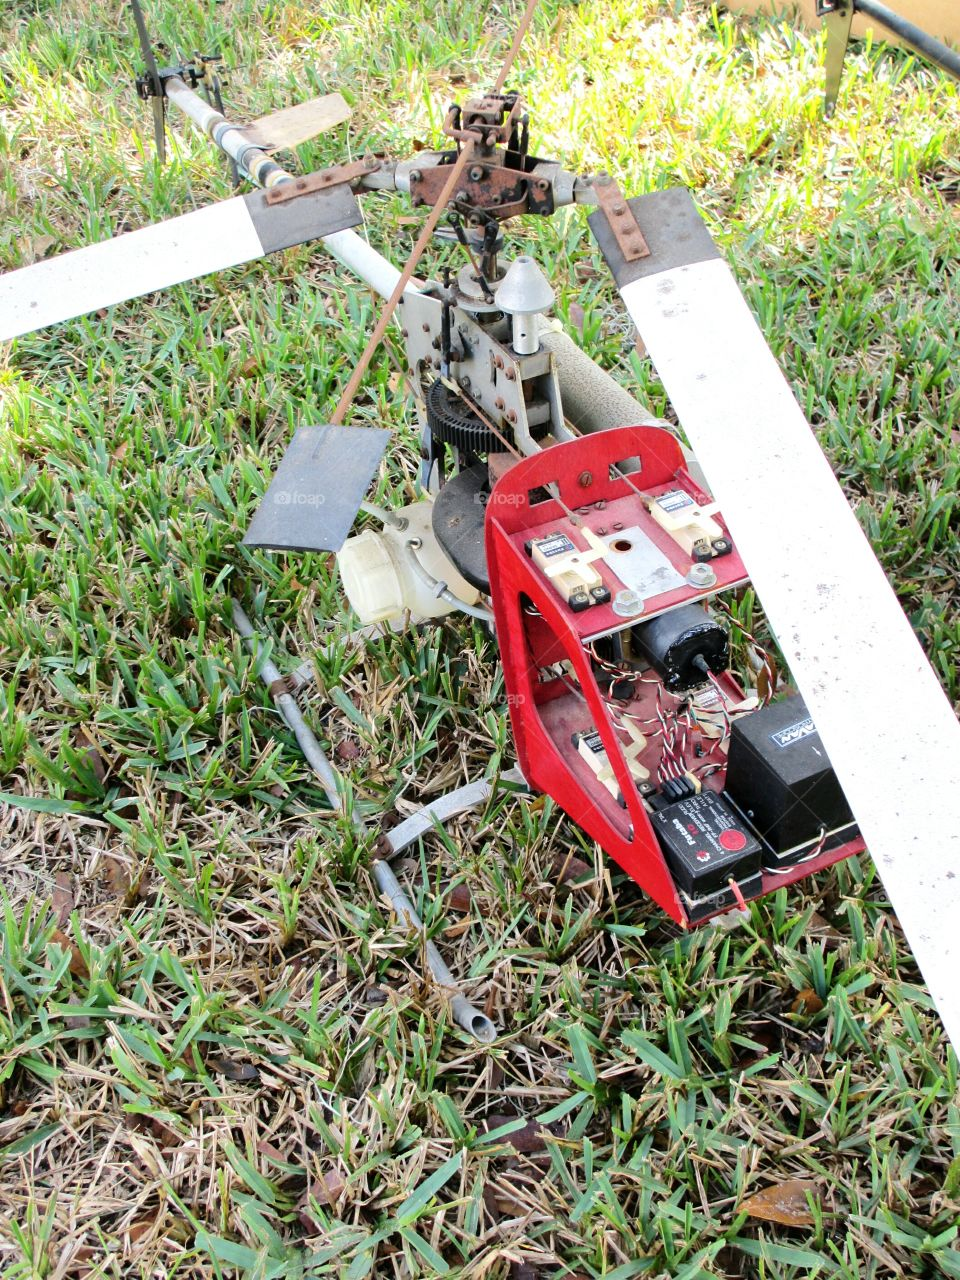 retro drone, radio controlled helicopter